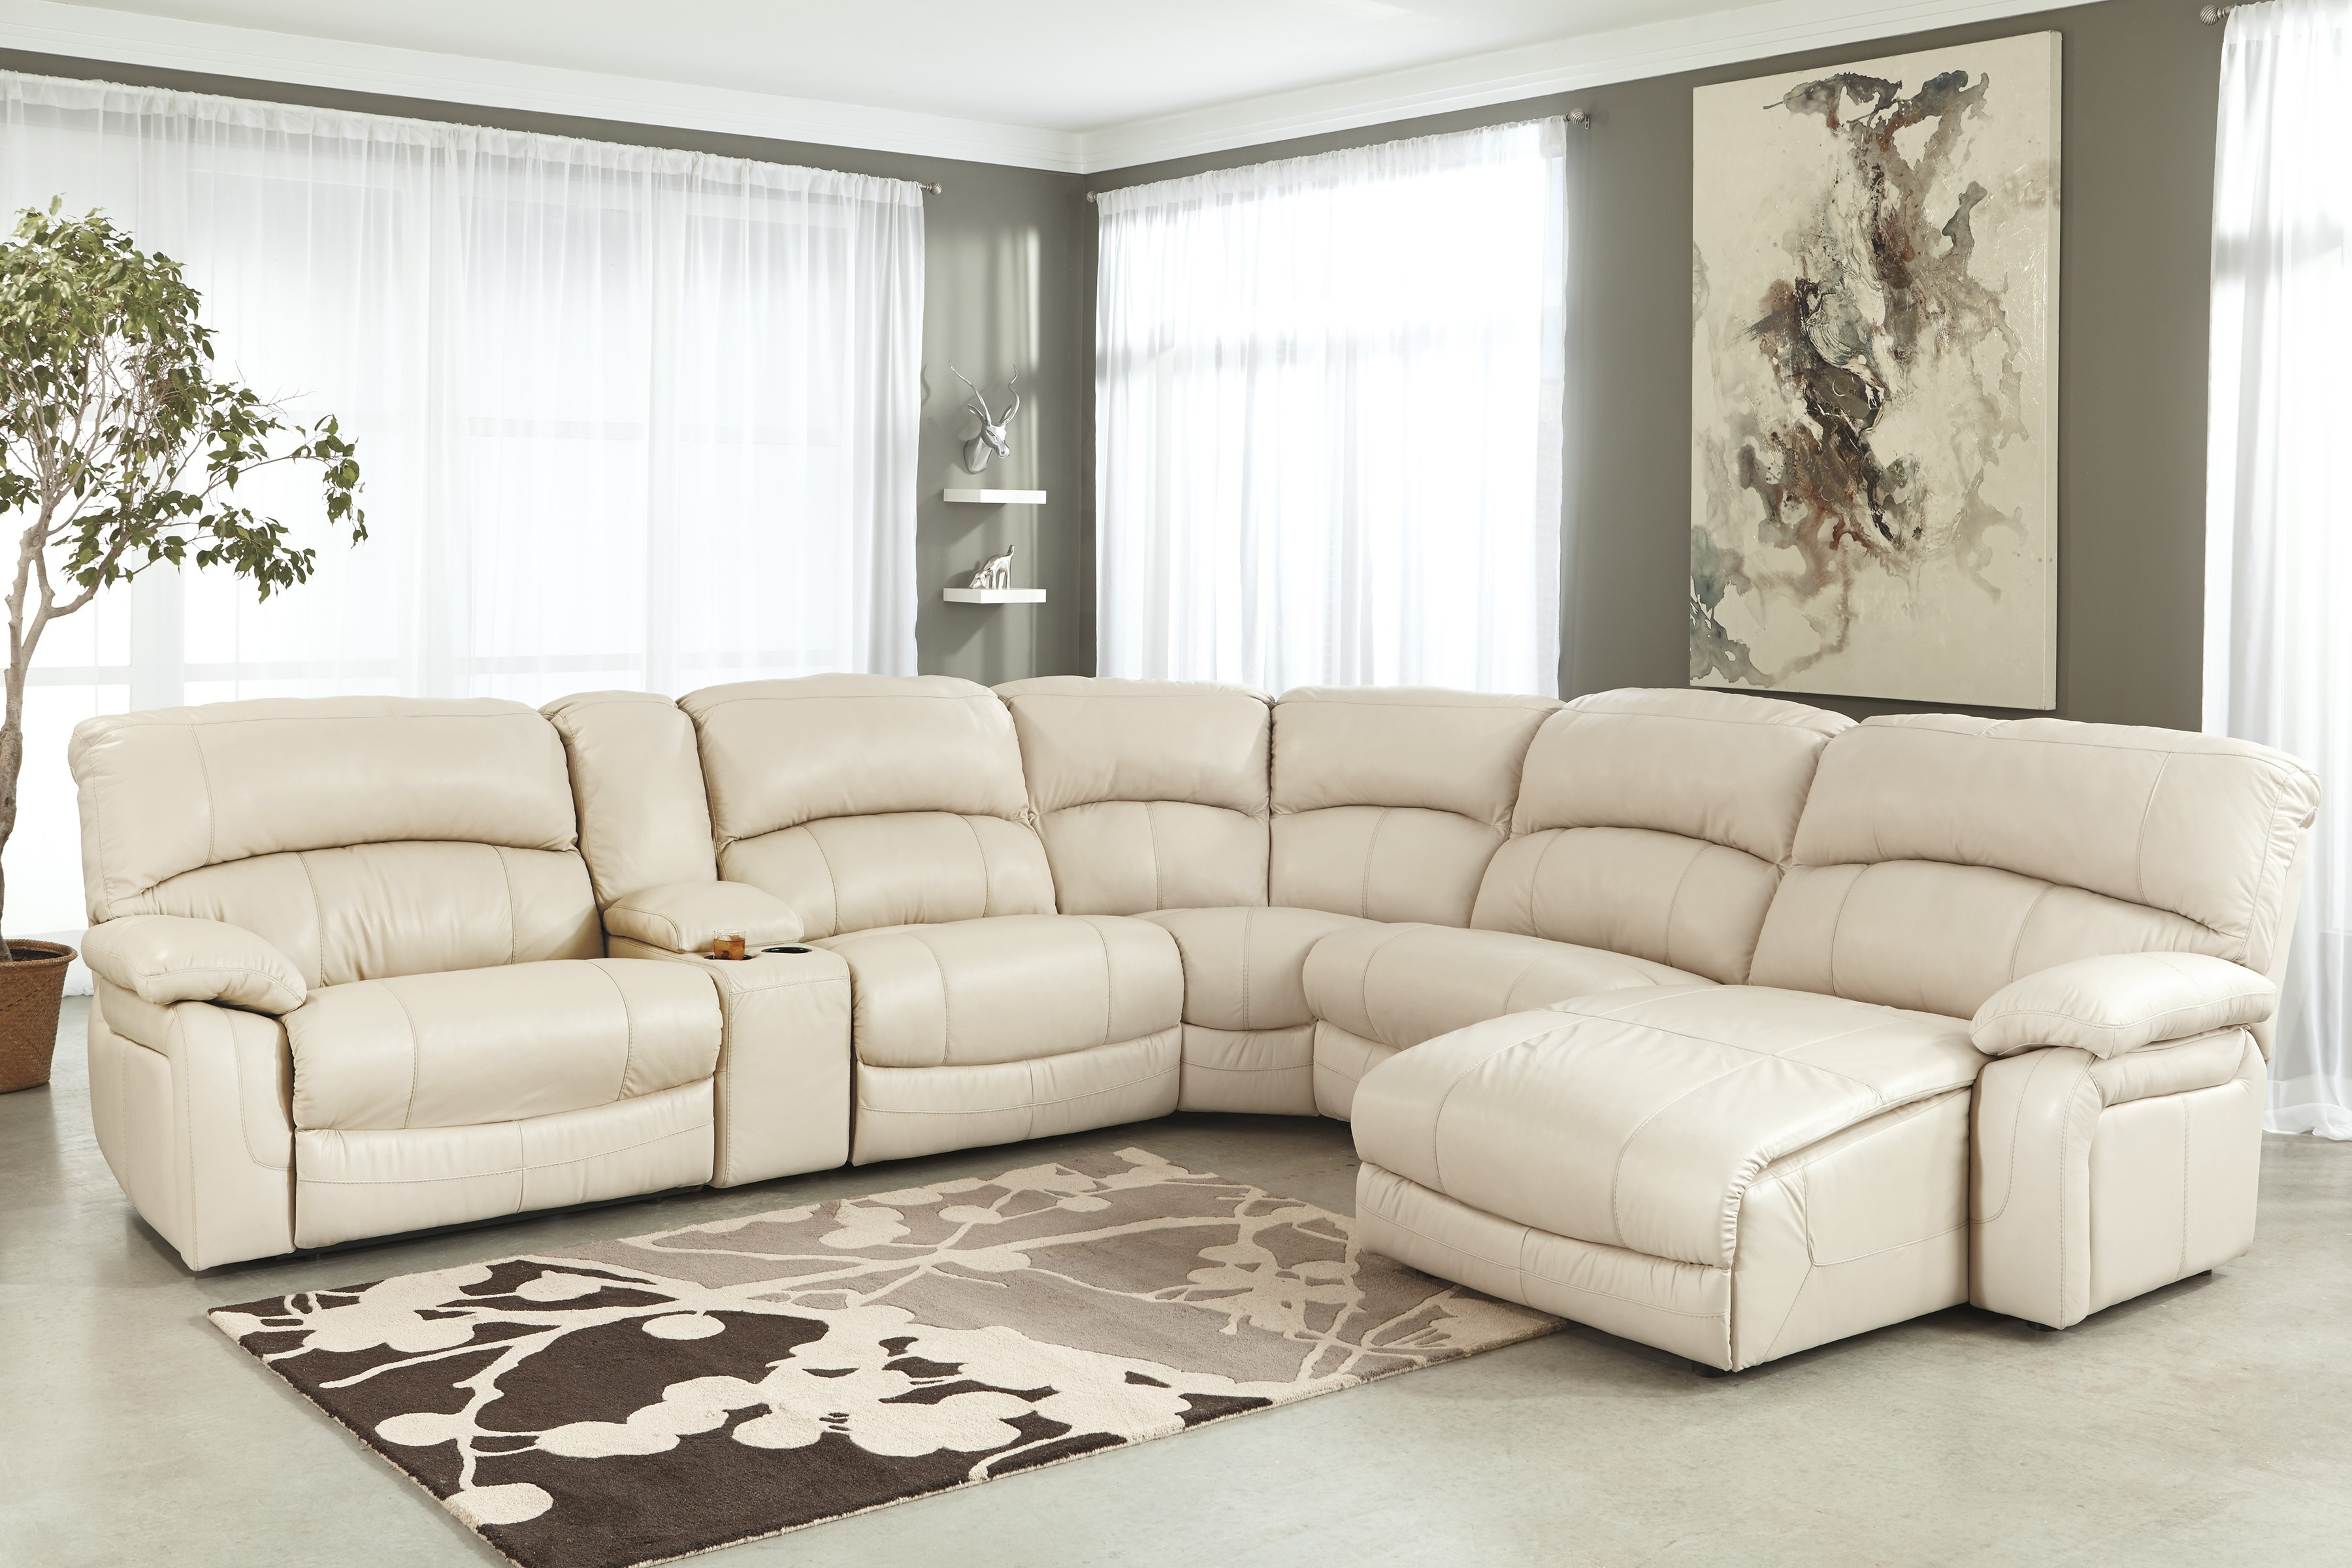 Uncategorized : Off White Leather Sectional Within Lovely Sofas For Off White Leather Sofas (Photo 7 of 10)